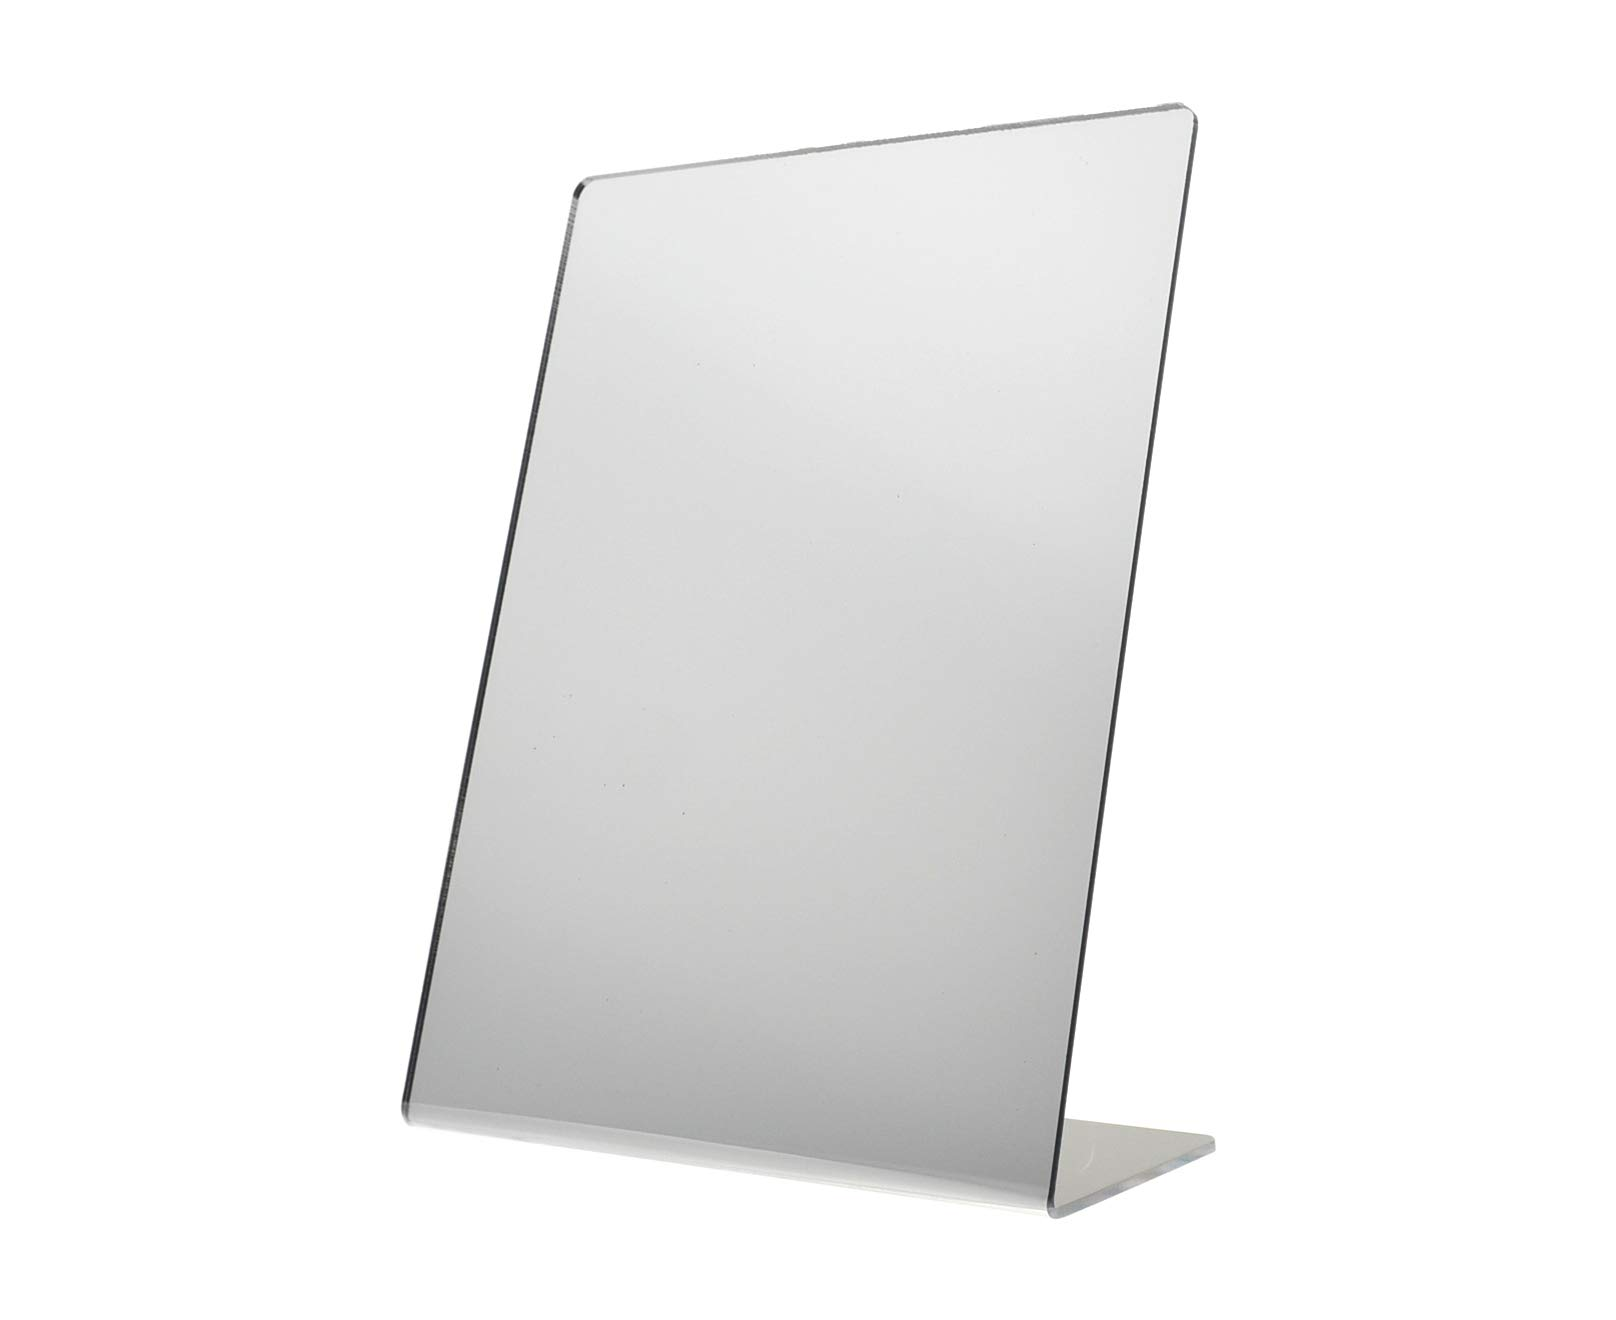 Marketing Holders 8.5'' W x 11'' H Slant Back Counter Top Jewelry Makeup Children's Baby Mirror (1)